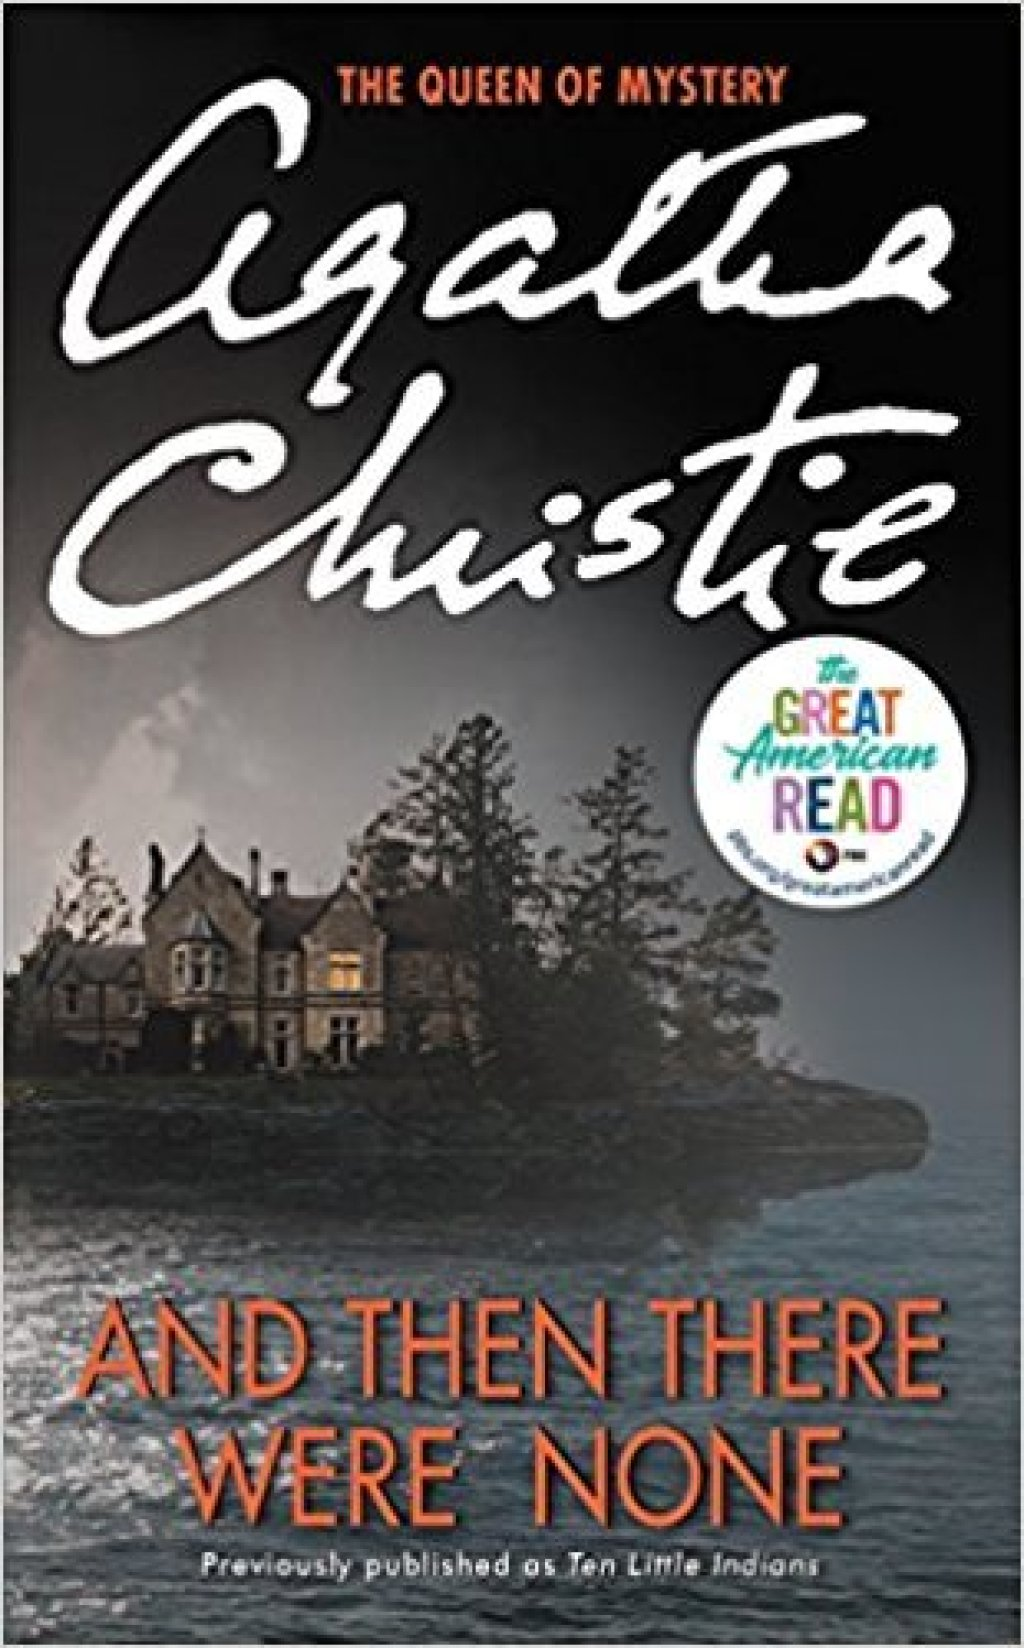 And Then There Were, Agatha Christie